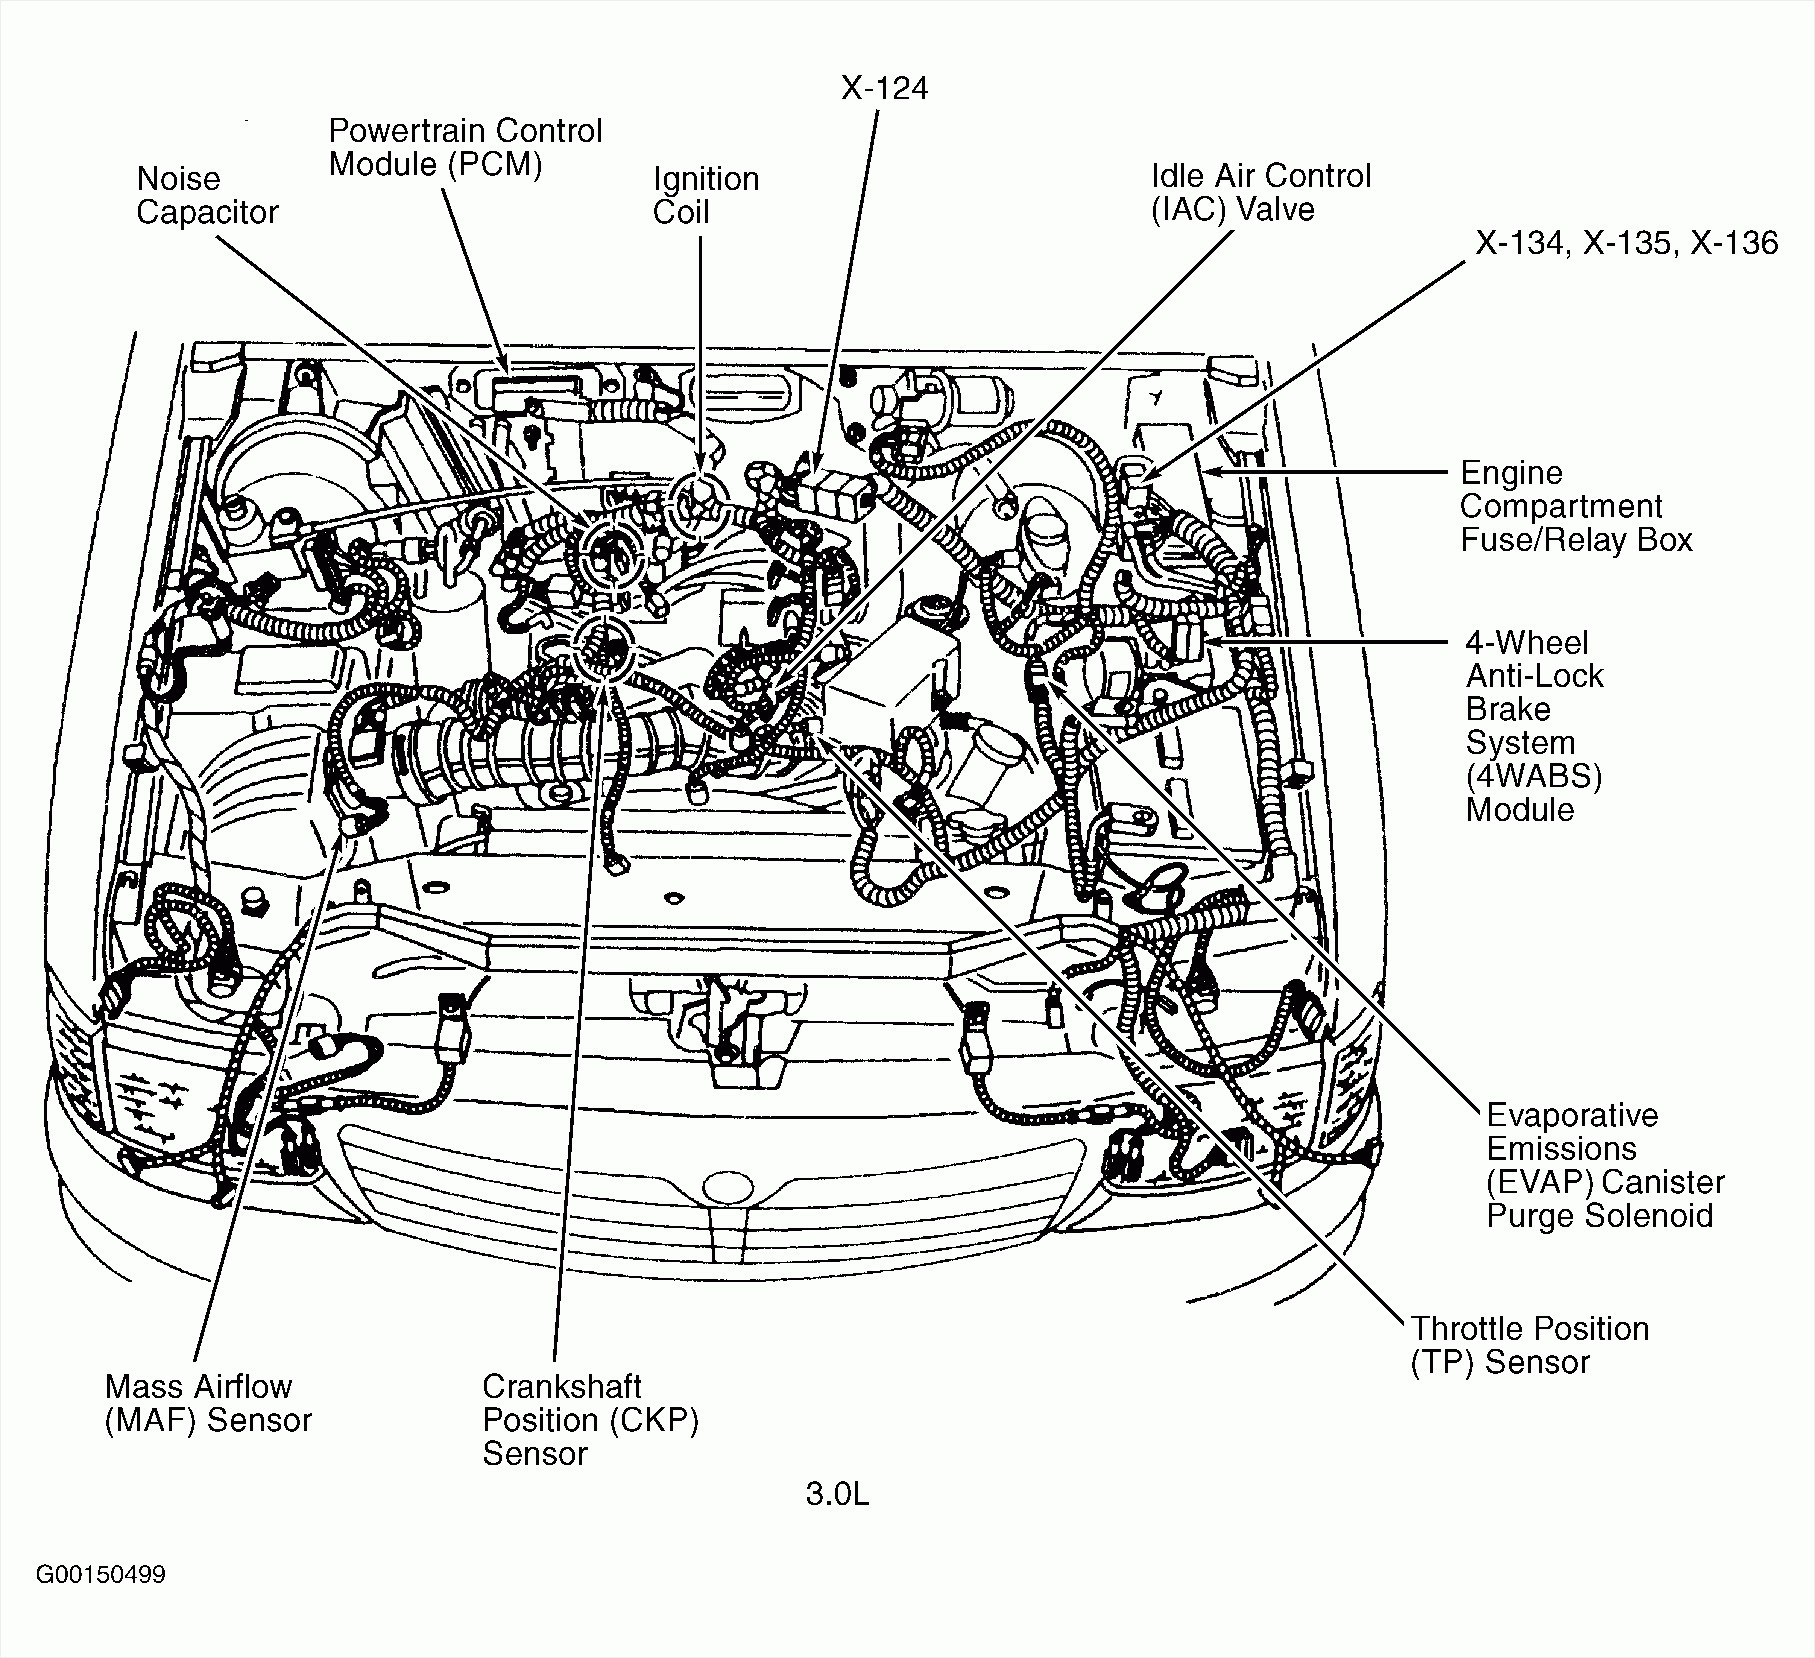 2001 escape v6 engine diagram